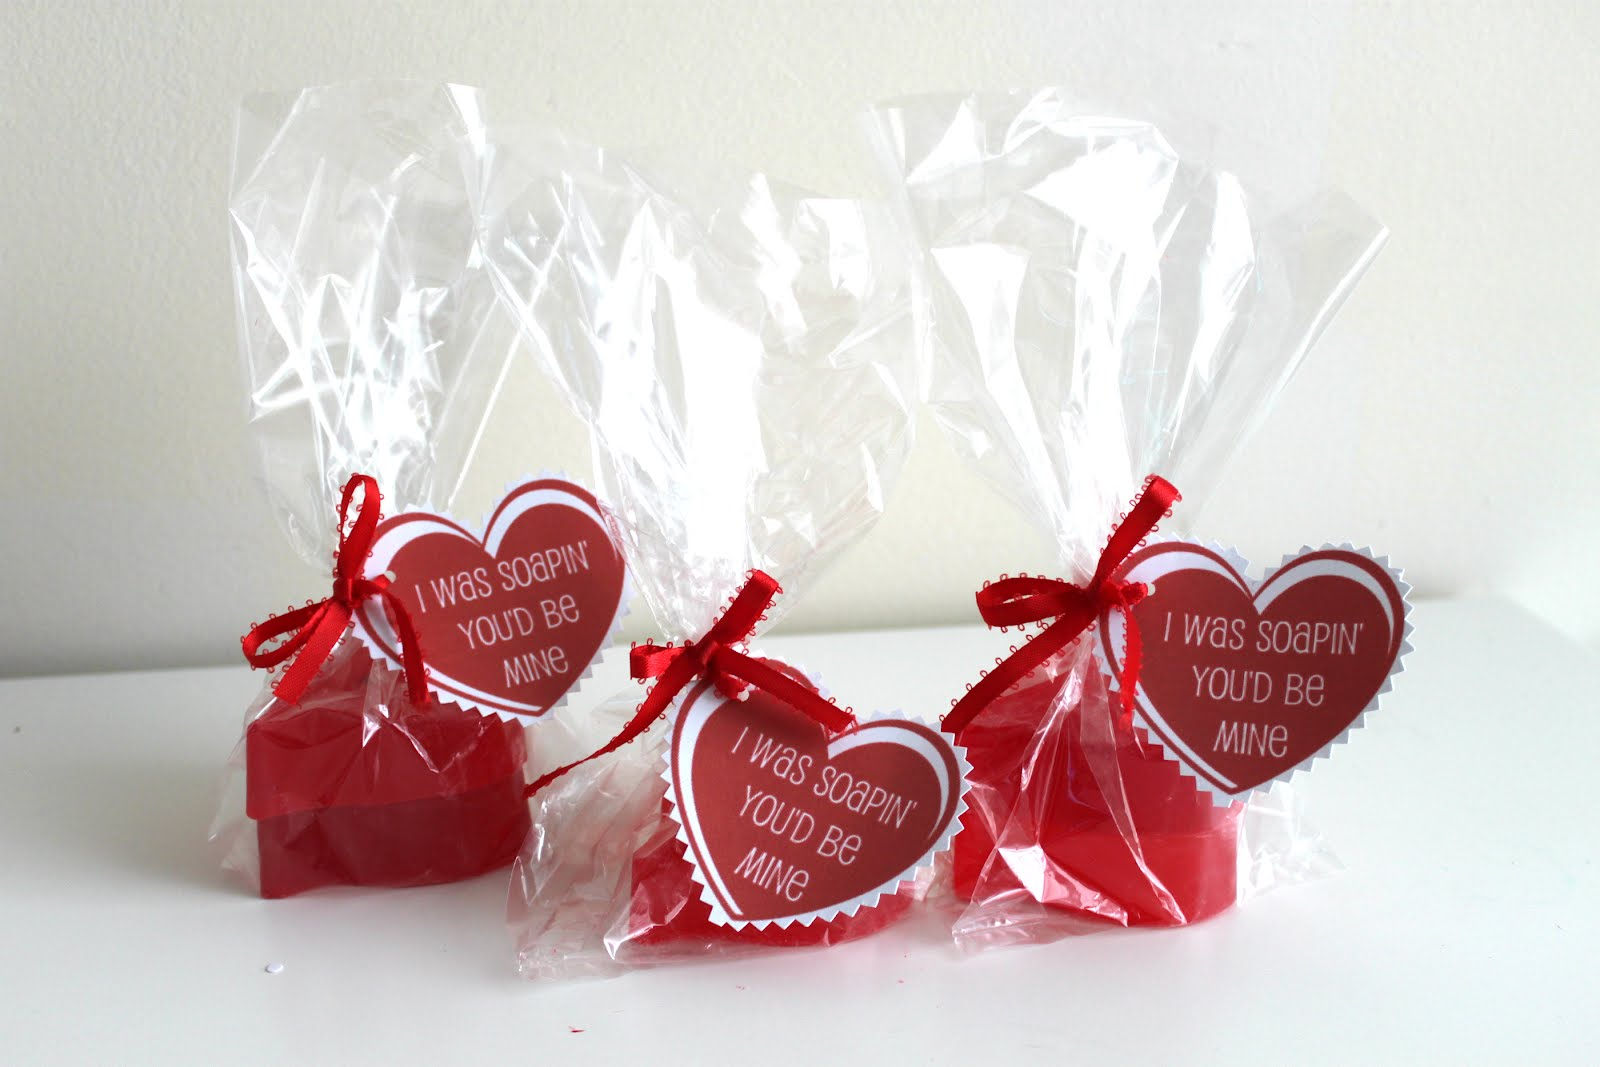 ... soaps would make a great Valentine gift for co-workers or friends